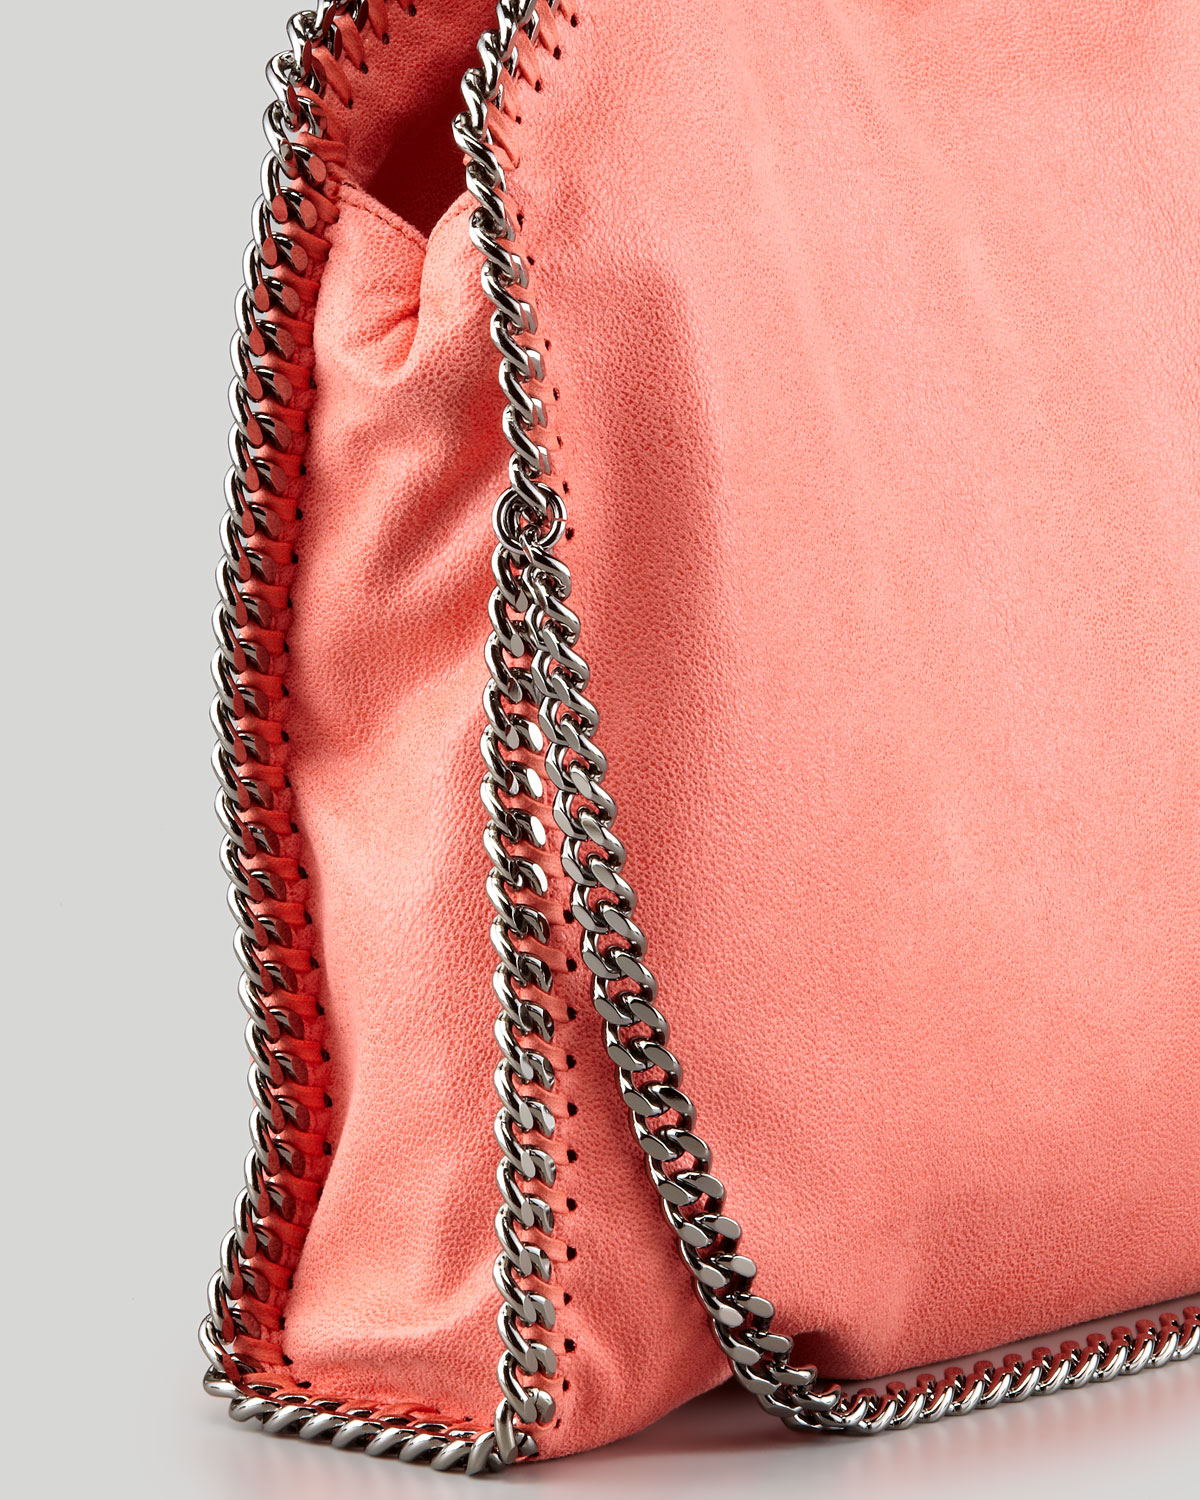 6bfd8eb4d7e1 Lyst - Stella McCartney Falabella Shaggy Deer Foldover Tote Bag in Pink